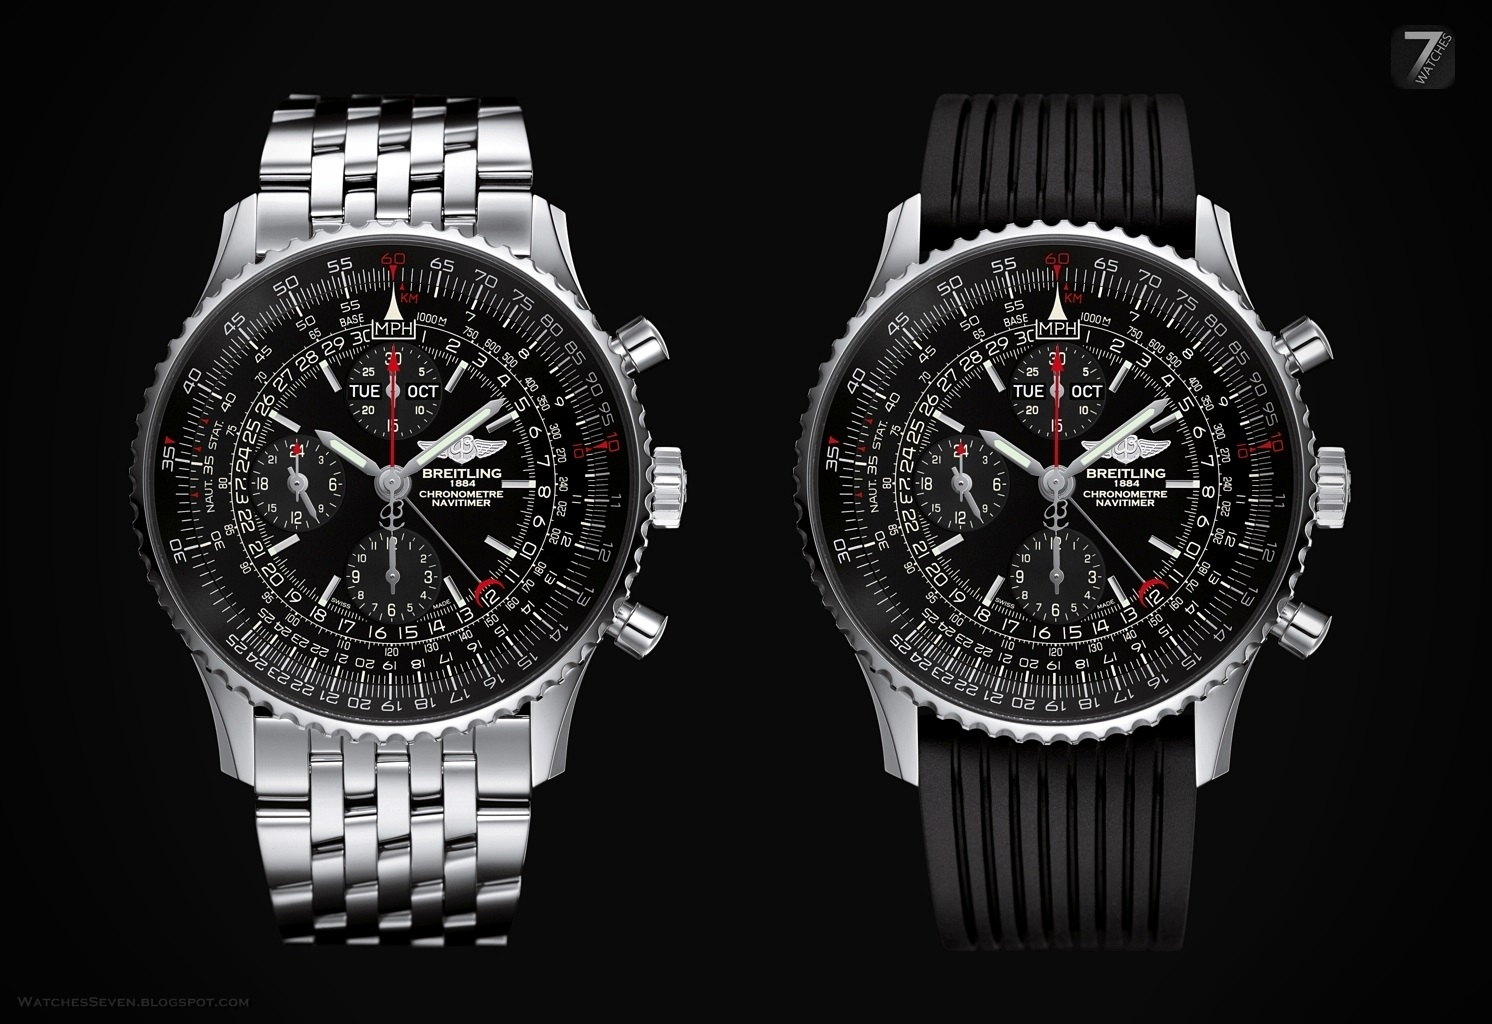 watches 7 breitling navitimer 1884 limited edition. Black Bedroom Furniture Sets. Home Design Ideas